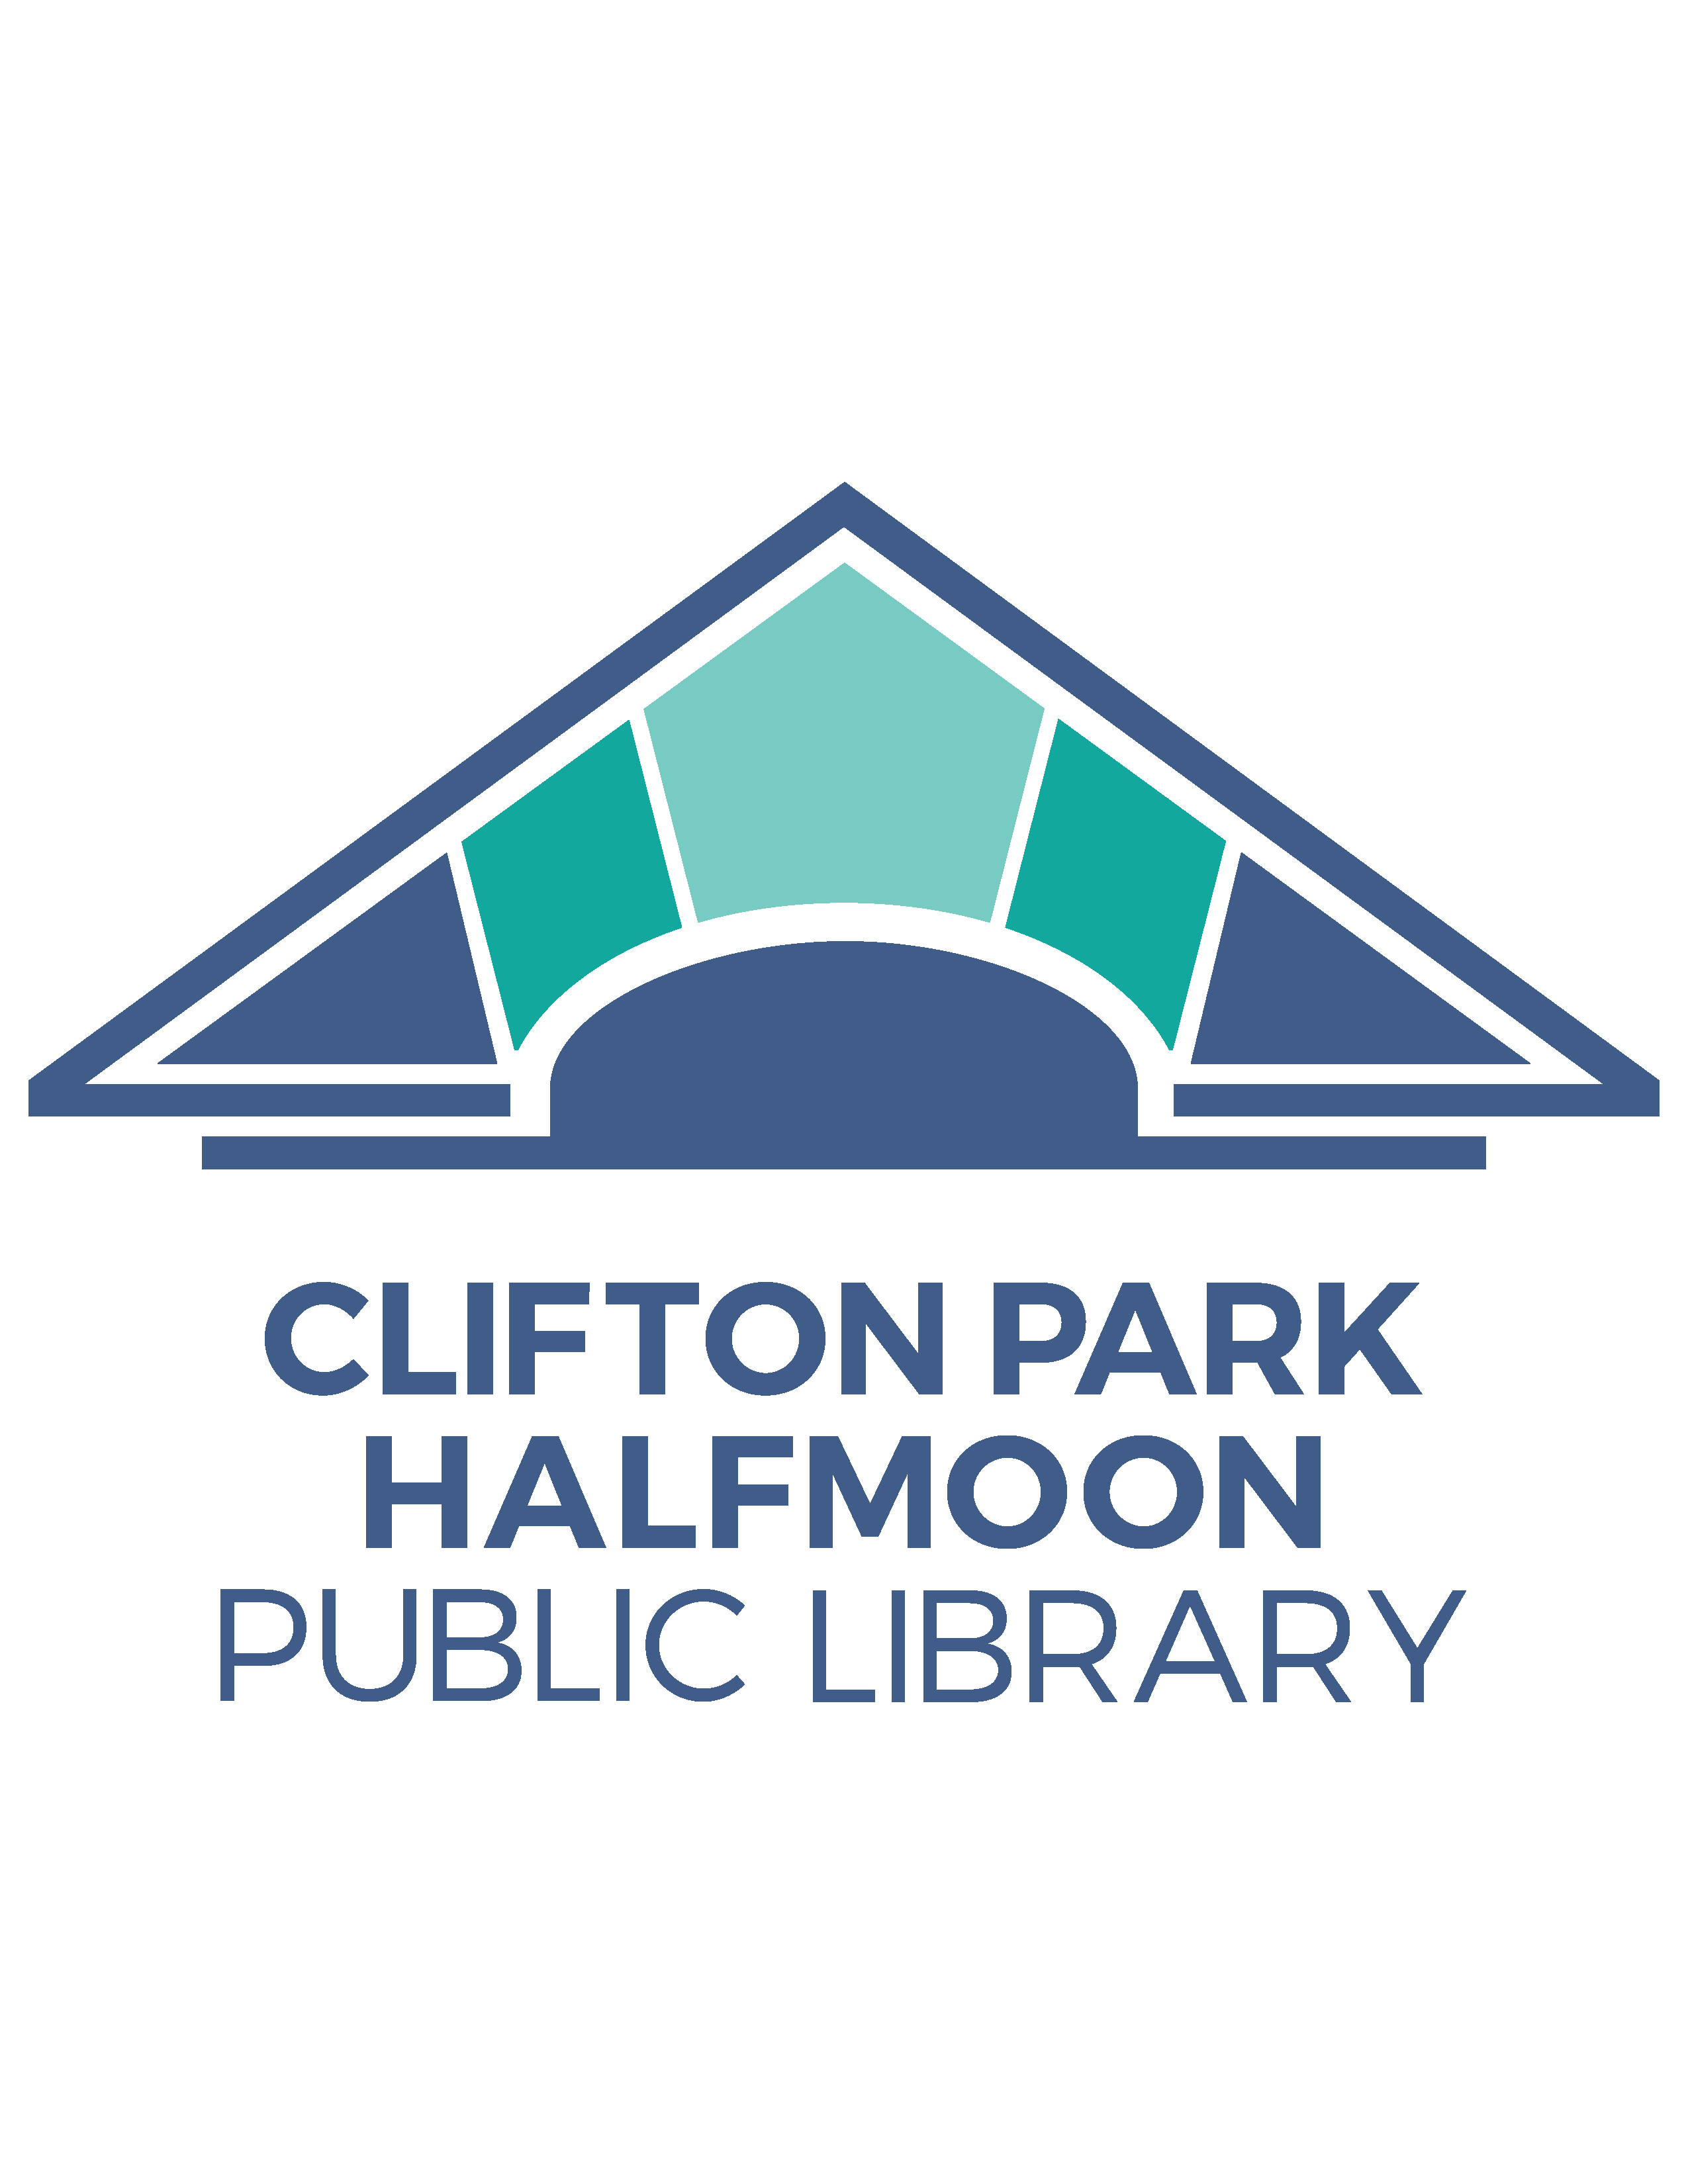 Clifton Park-Halfmoon Public Library Leap of Kindness